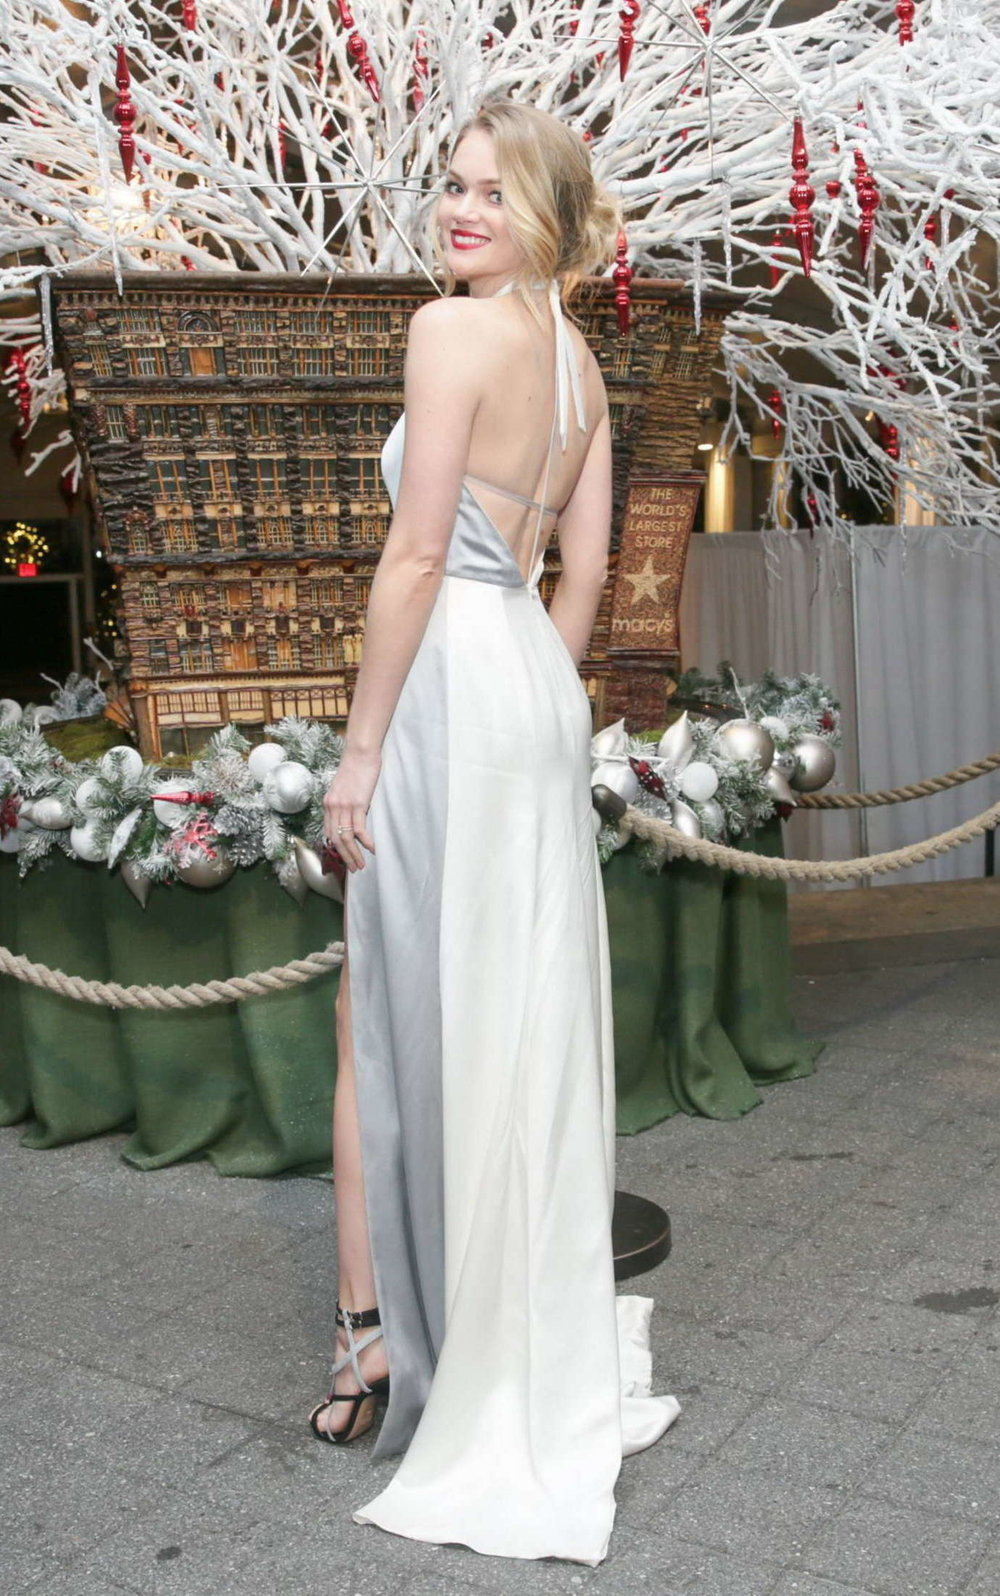 Lindsay-Ellingson--The-Winter-Wonderland-Ball-2015--05.jpg